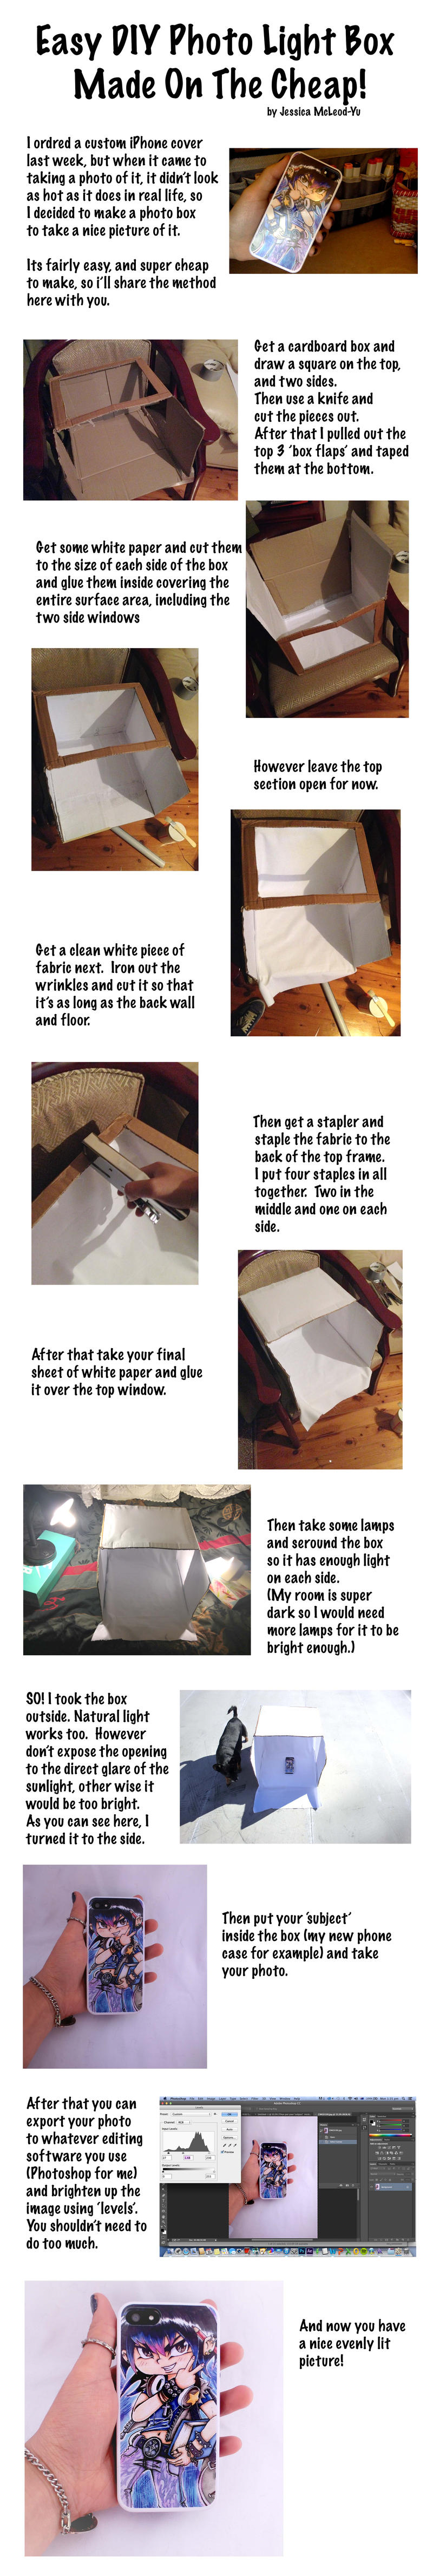 Easy diy photo light box made on the cheap by rocket child for How to make a cheap rocket